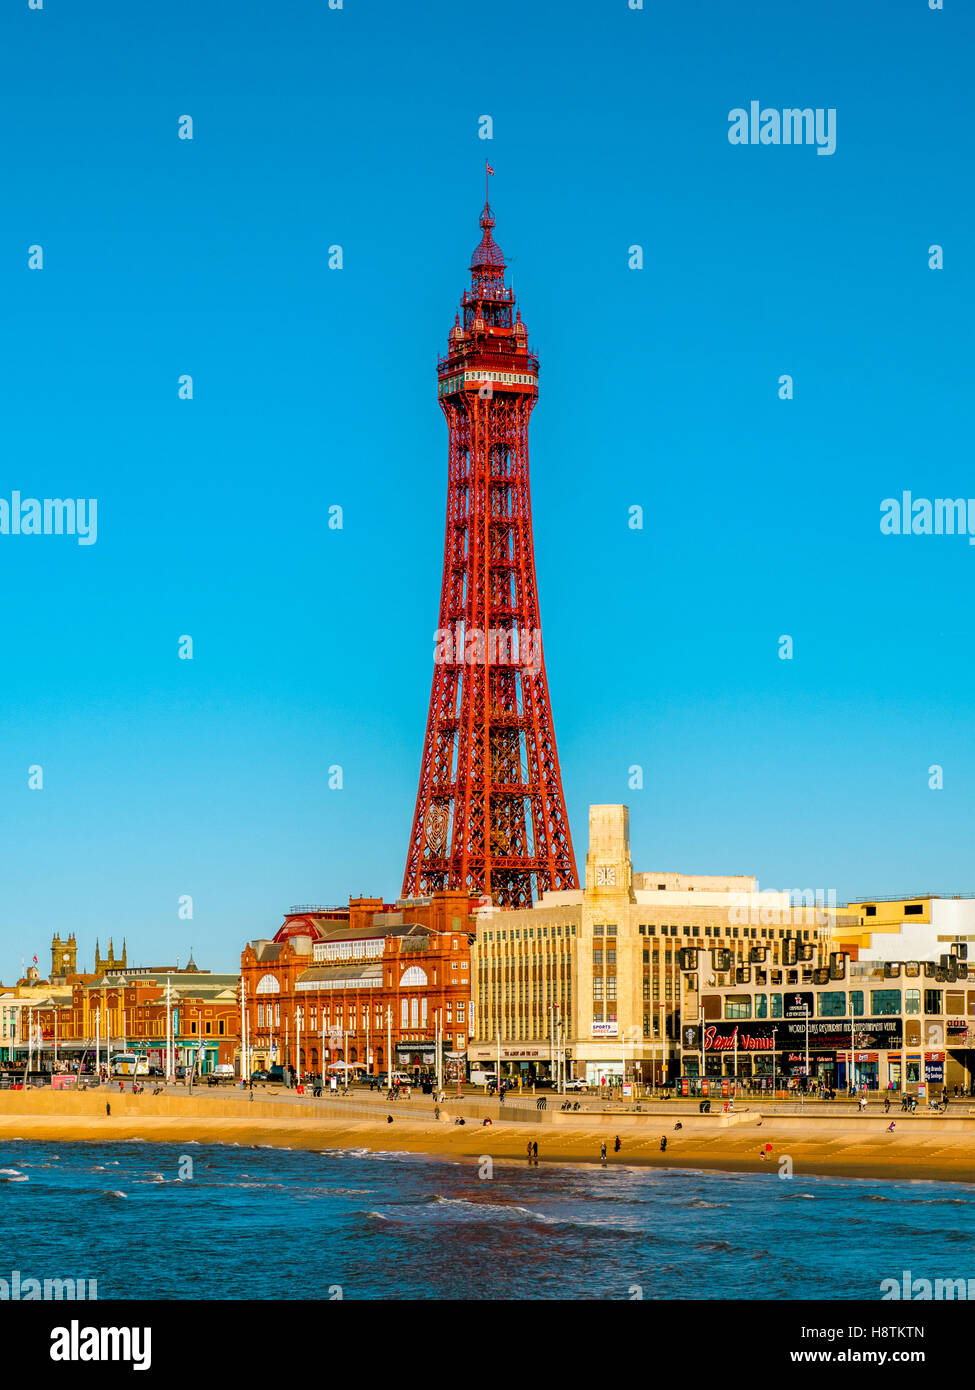 Blackpool Tower und Promenade, Blackpool, Lancashire, UK. Stockbild